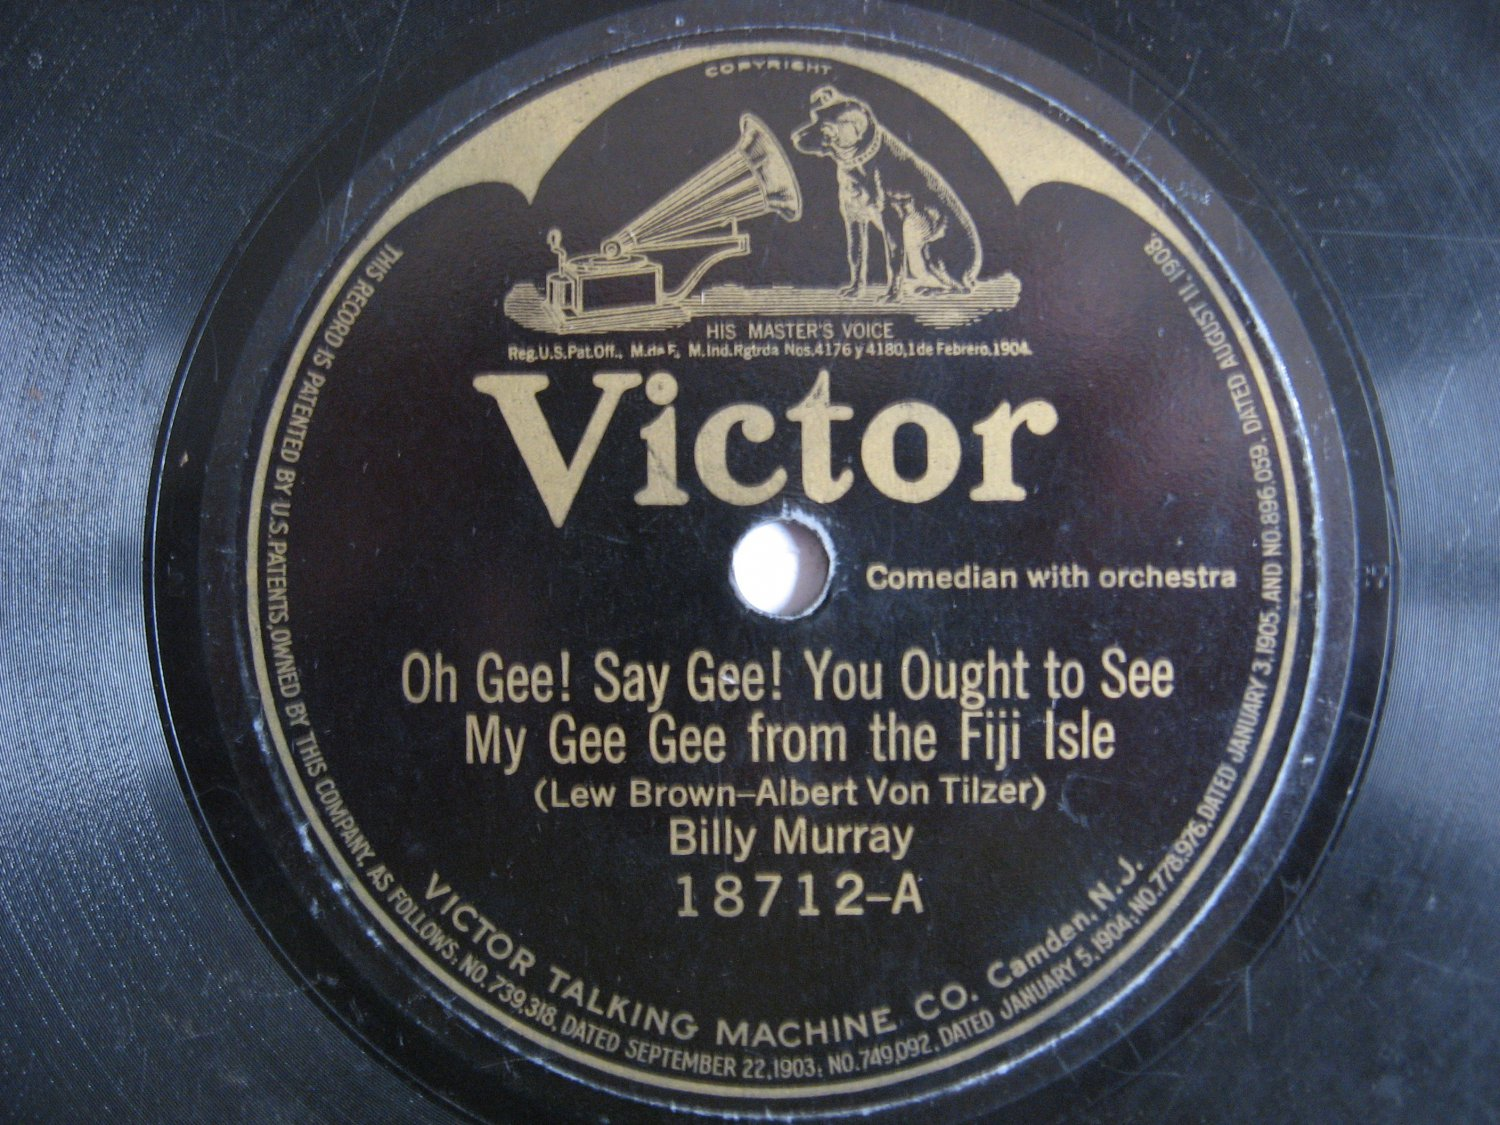 Bill Murray - Oh Gee! Say Gee! You Ought To See My Gee Gee From The Fiji Isle - Circa 1921